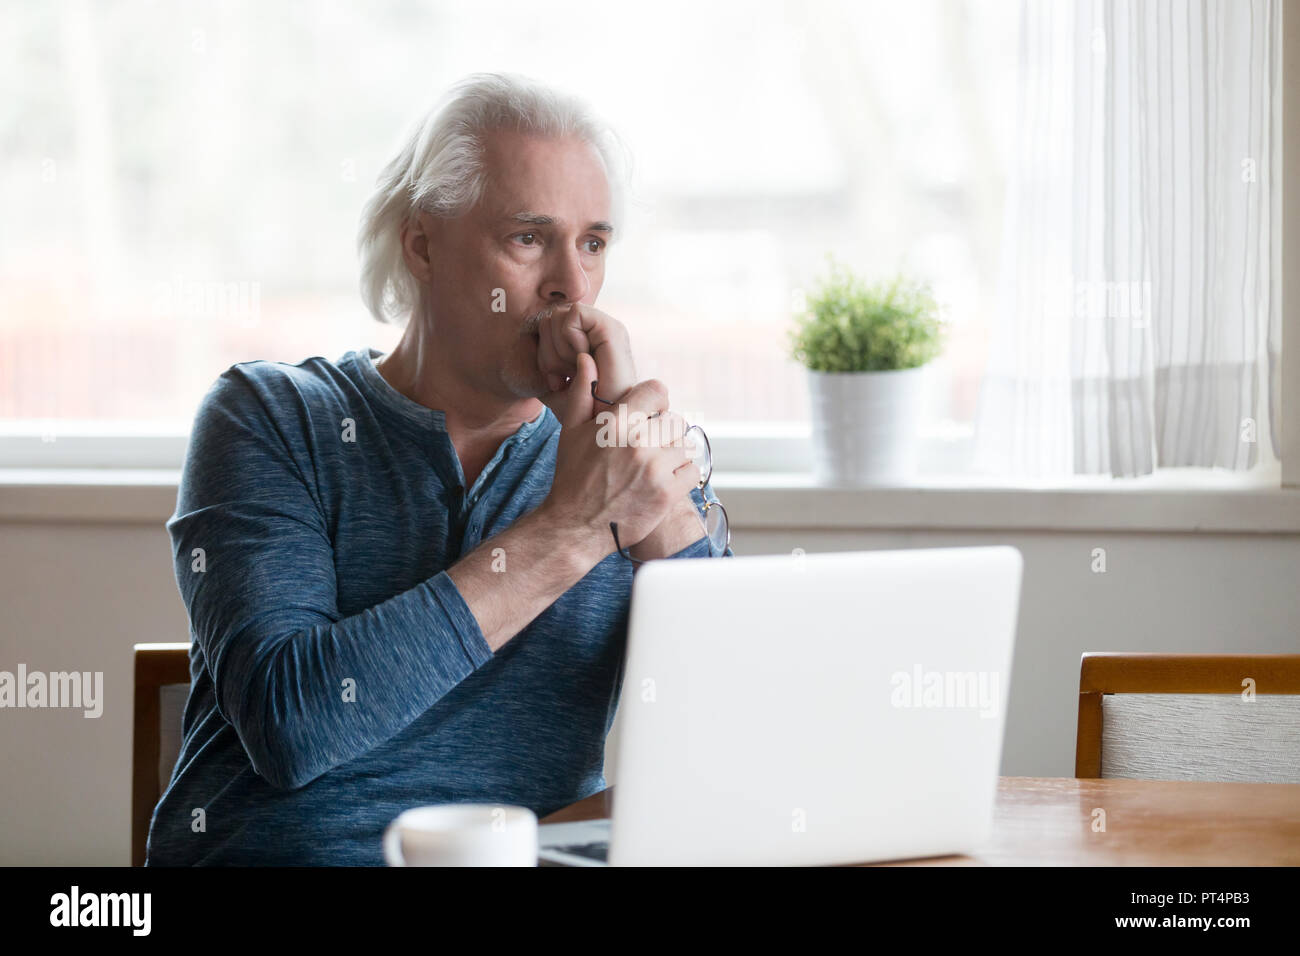 Serious thoughtful senior man looking away thinking of problem s - Stock Image